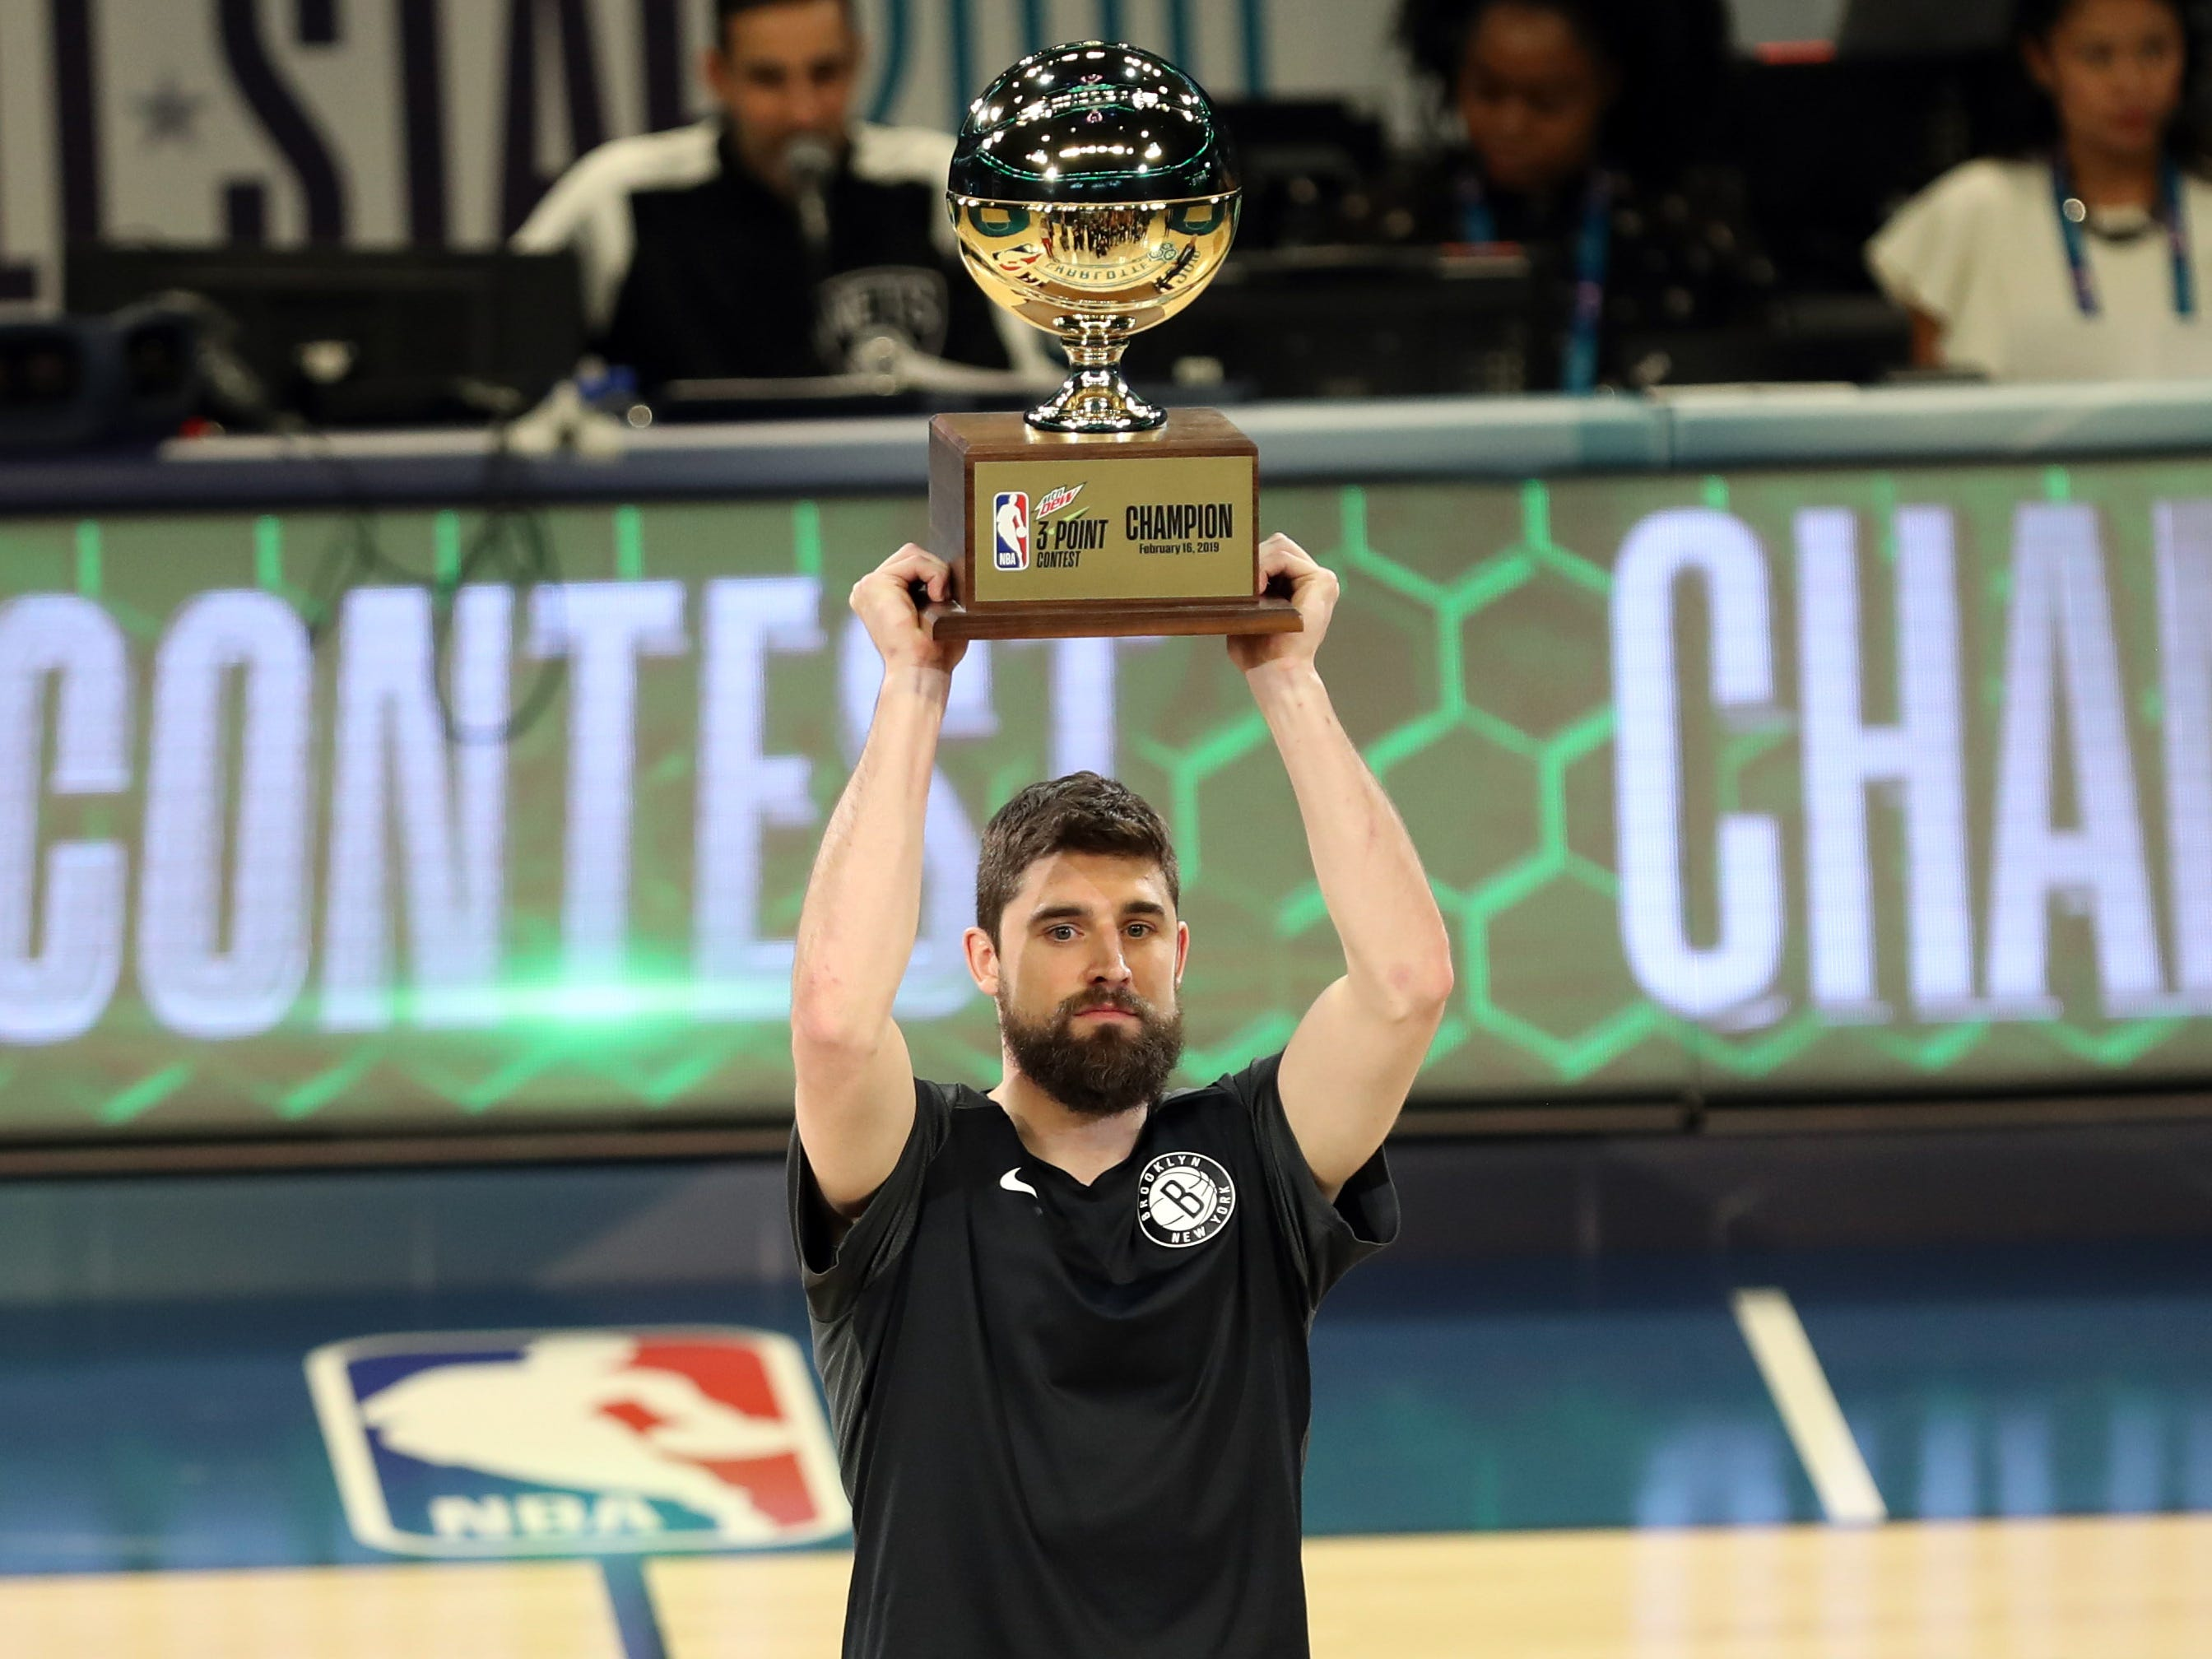 Joe Harris celebrates after winning the 3-Point Contest.